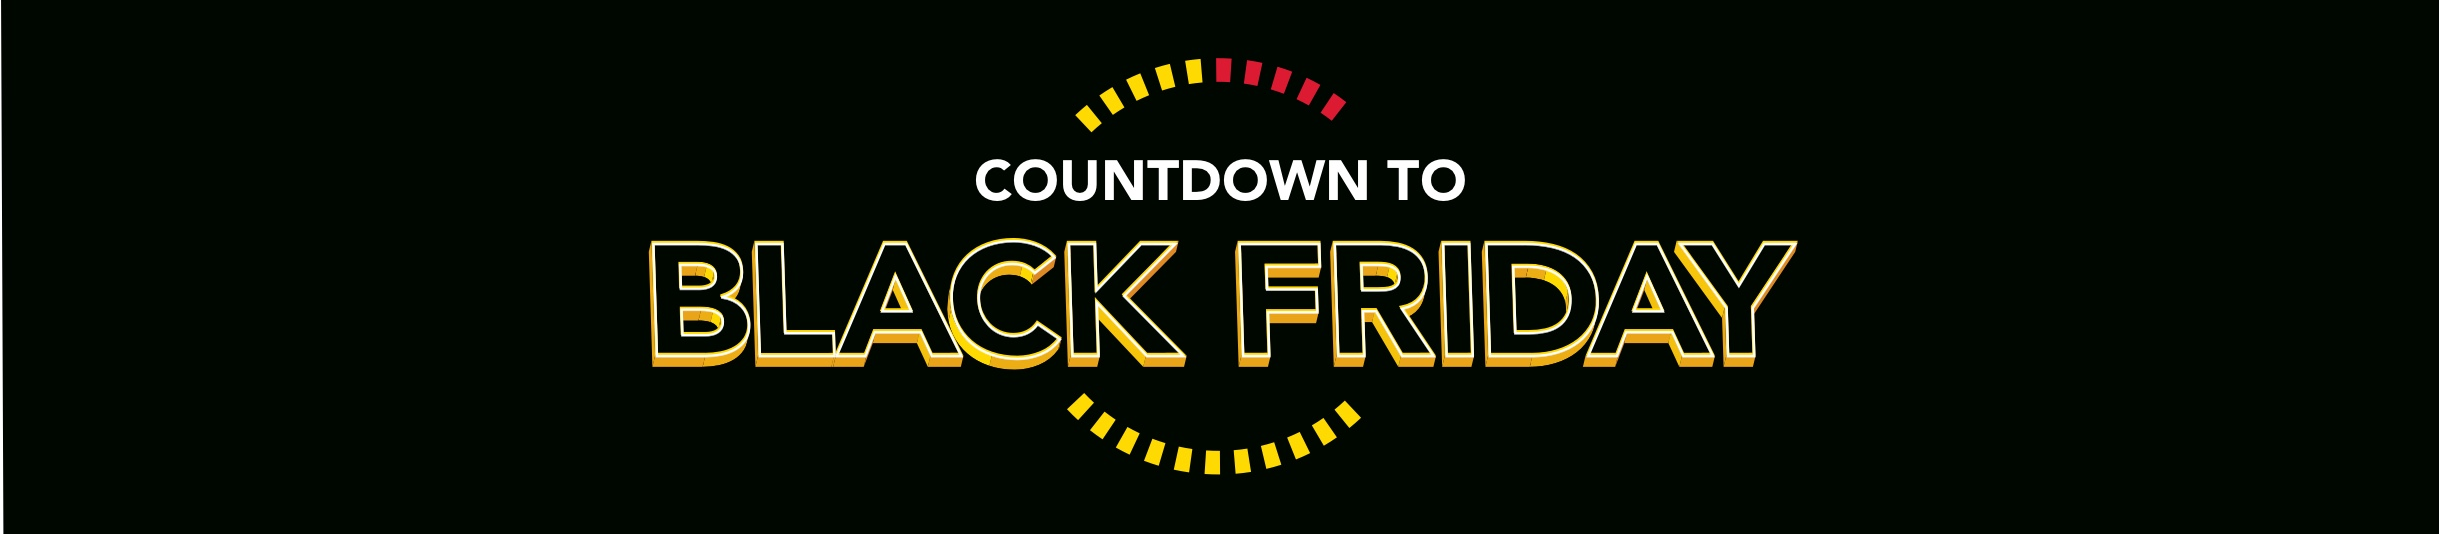 Black Friday 2018 Countdown